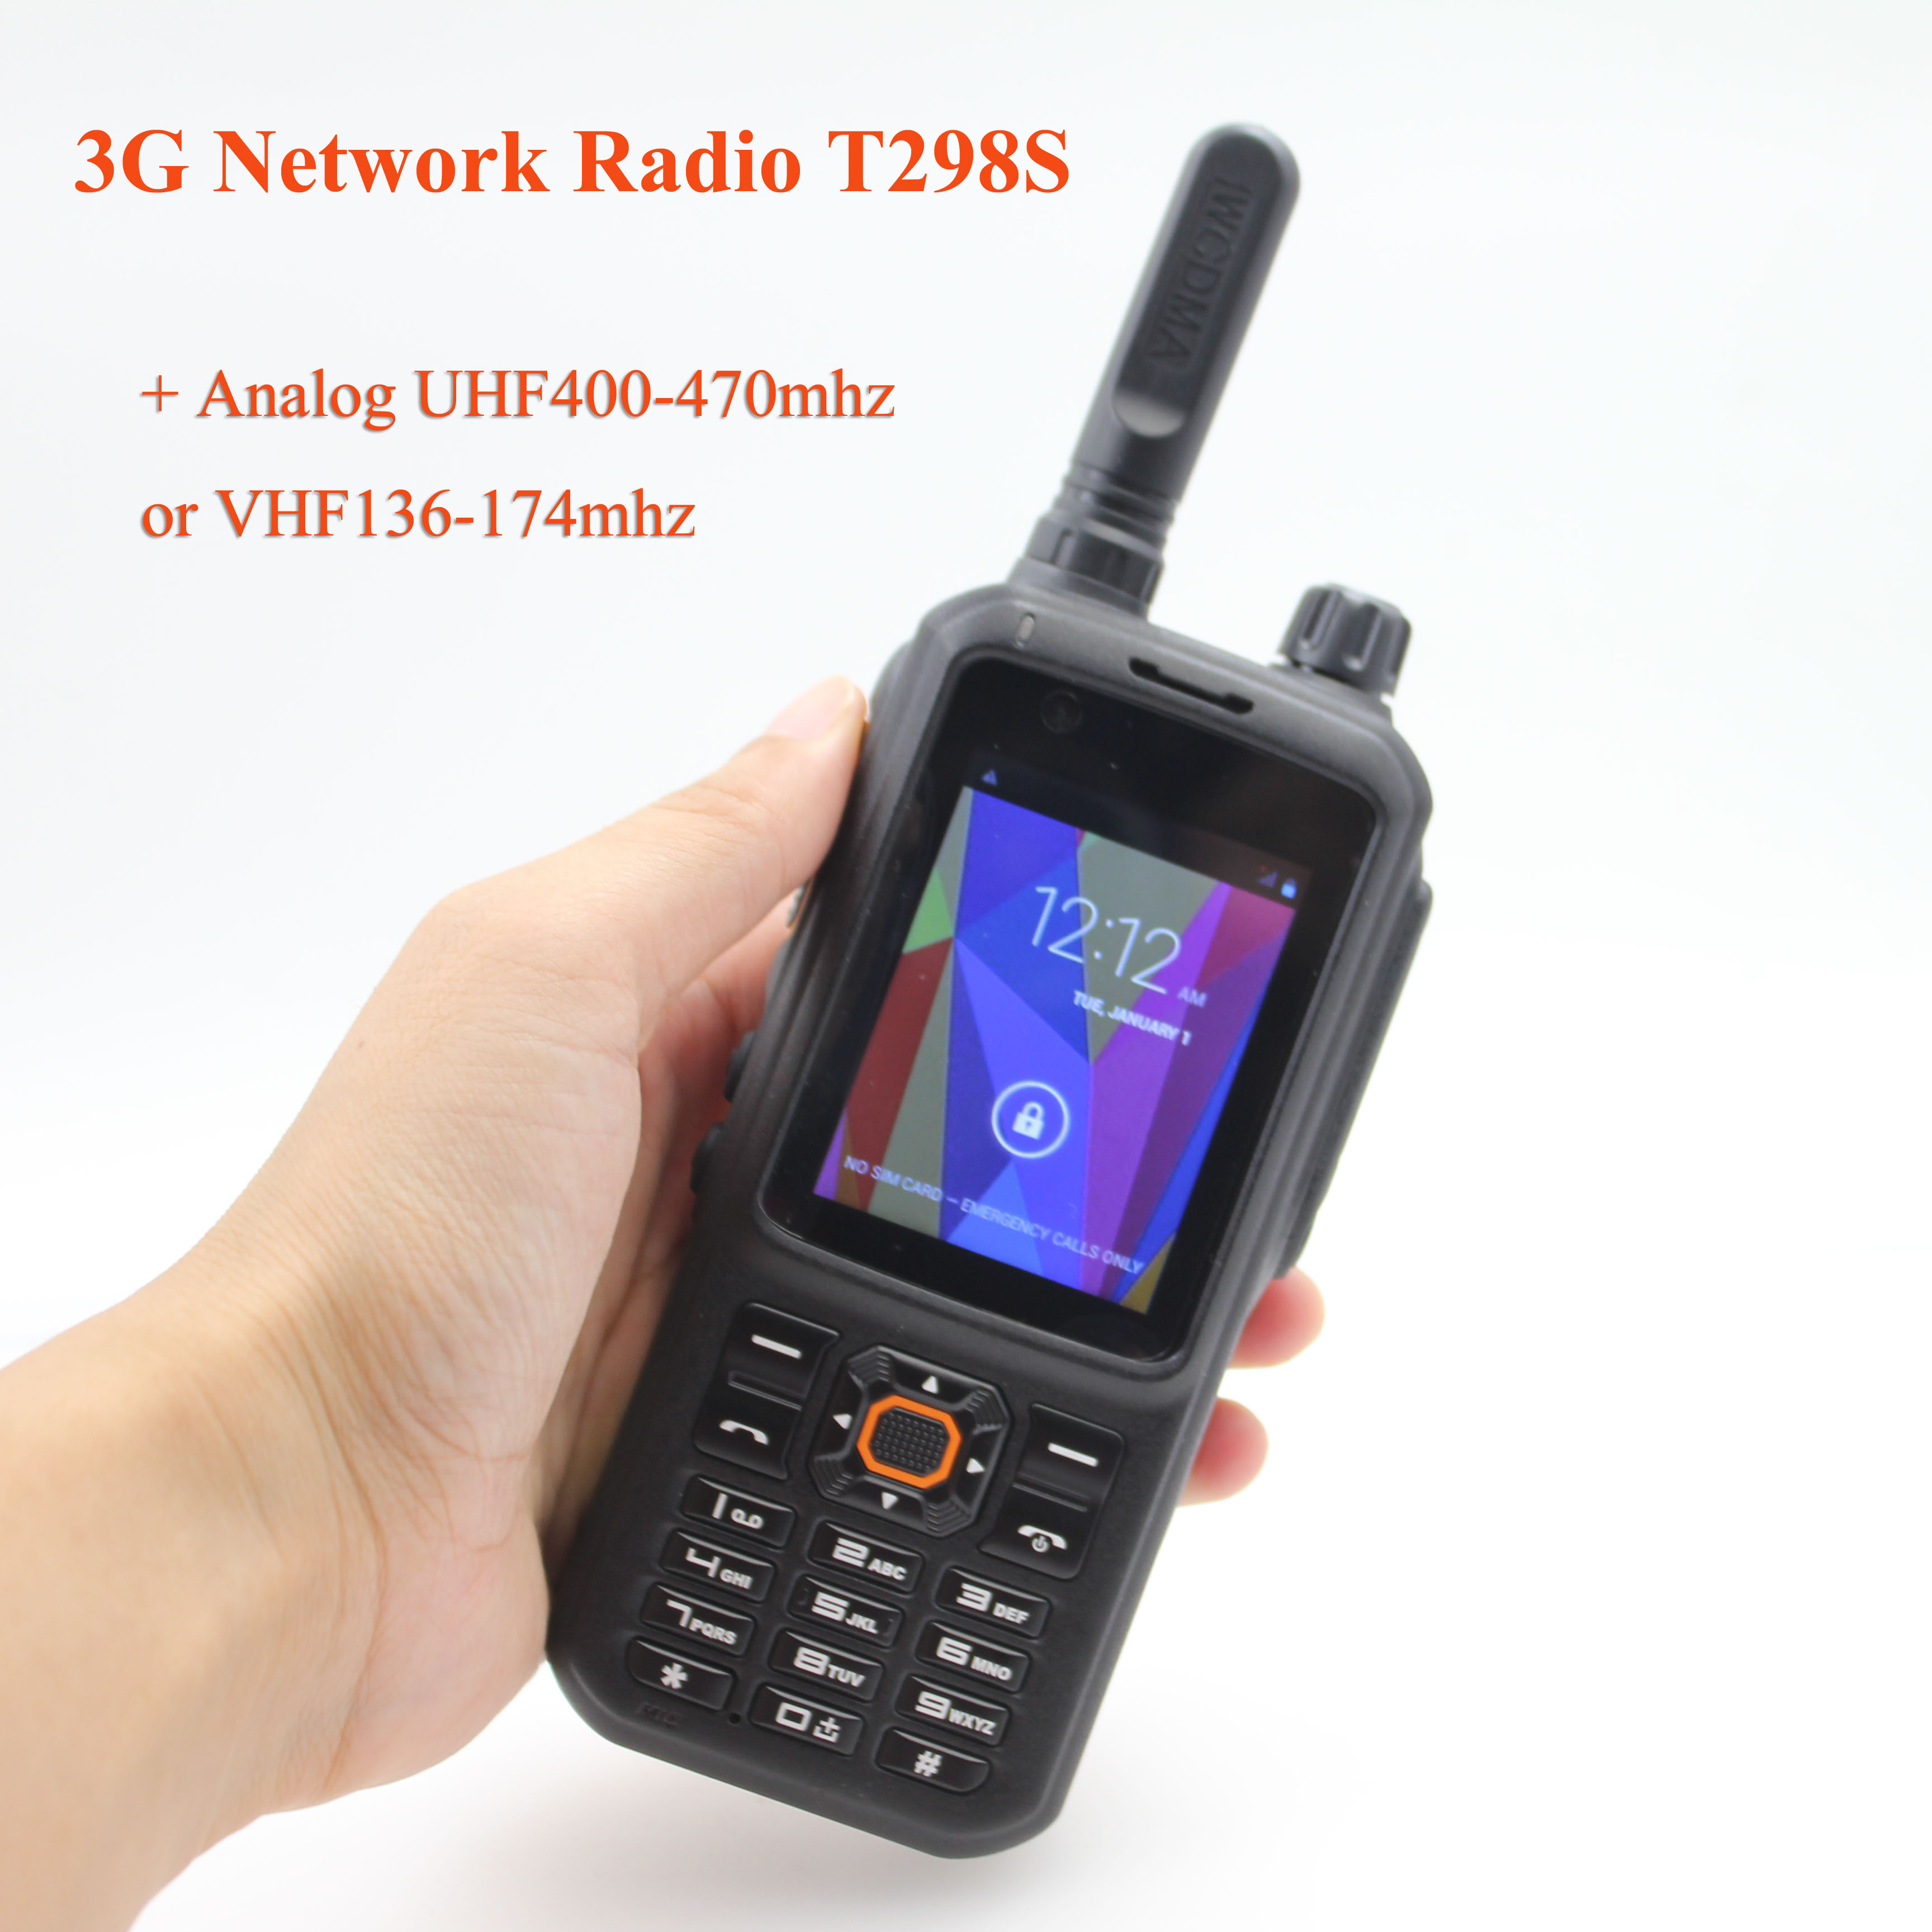 3G Network Radio T298S Android 4.4.2 WCDMA GSM Public Network Radio Touch Screen UHF400-470MHz Or VHF136-174MHz Walkie Talkie